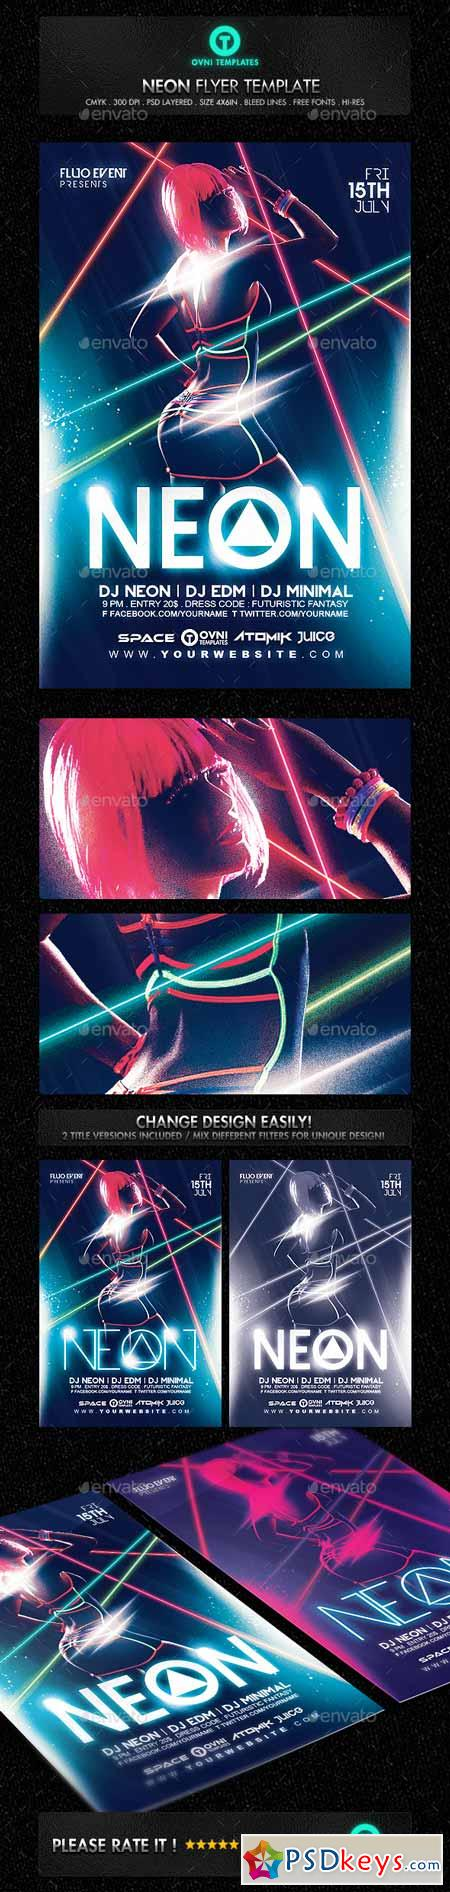 Neon Laser Fluo Light Sexy Flyer Template 13124617